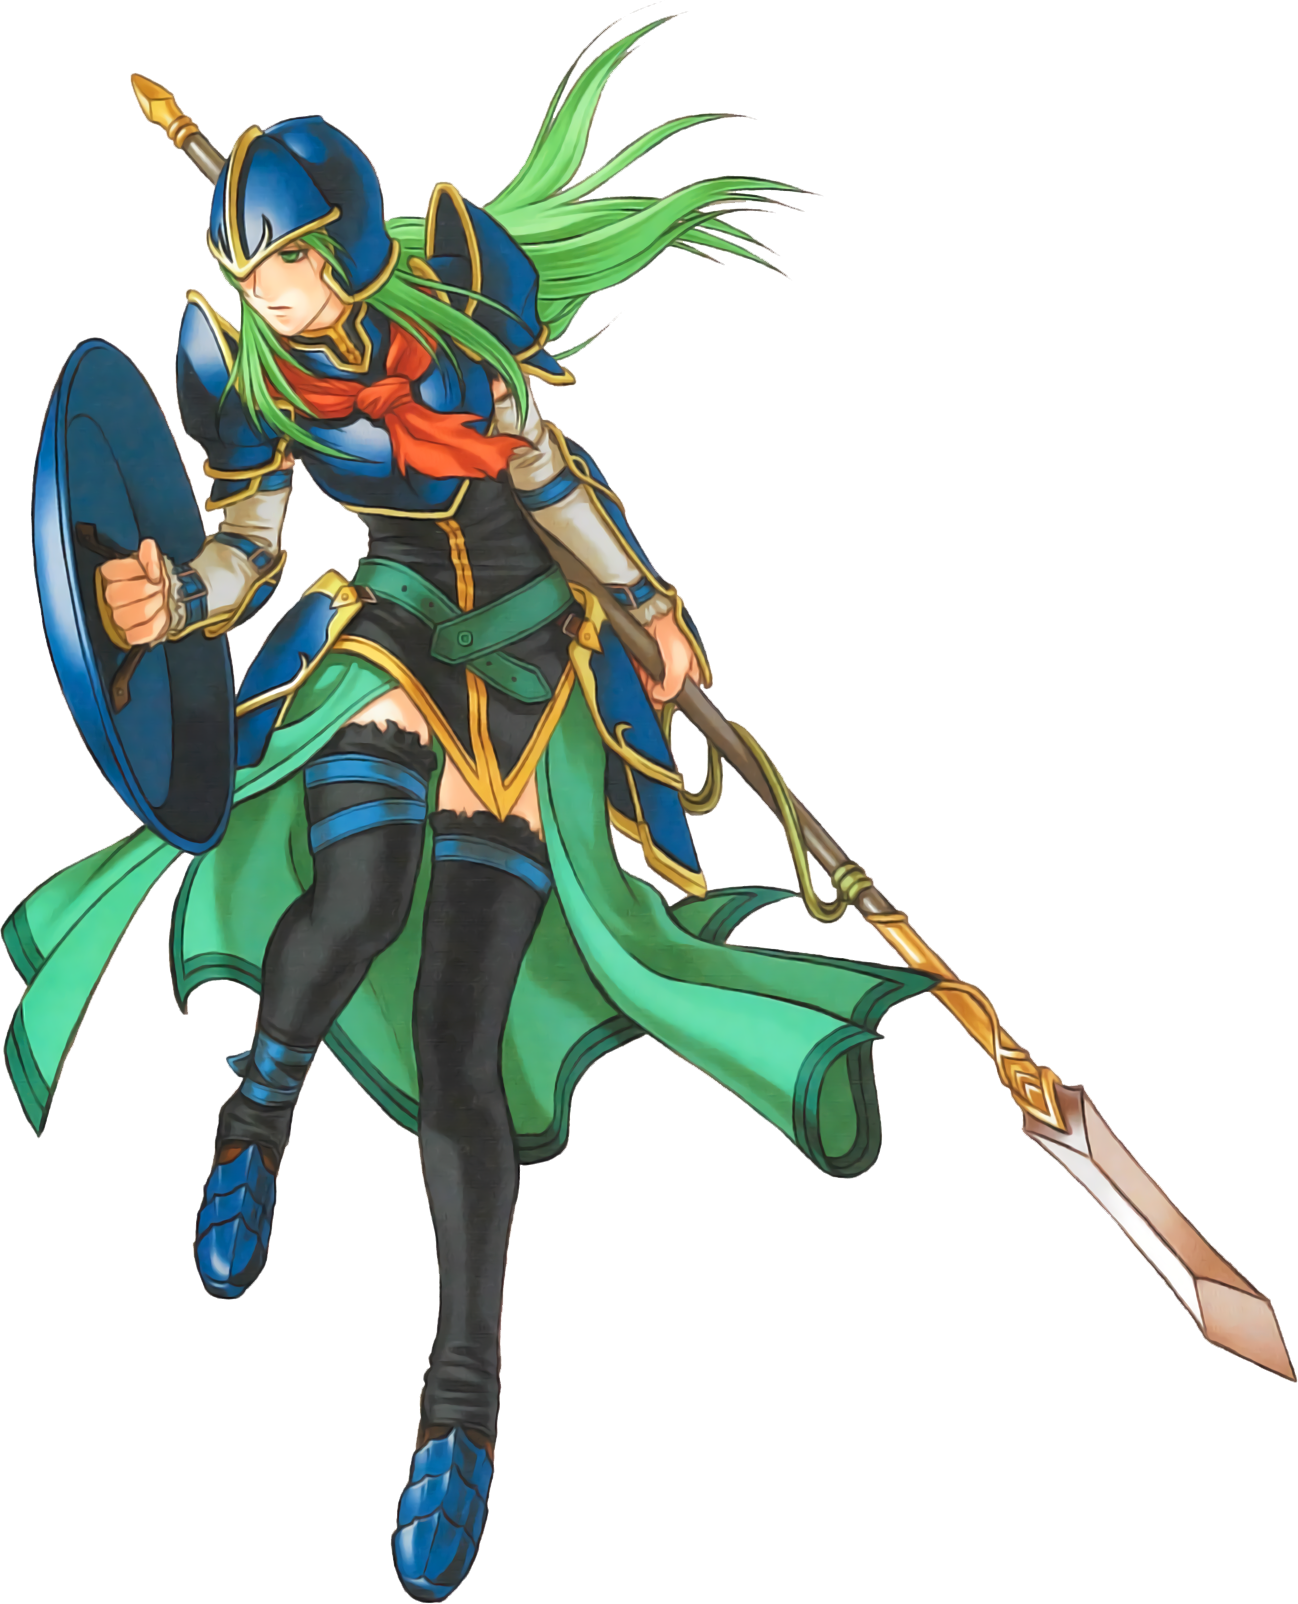 File:FE10 Nephenee Artwork.png